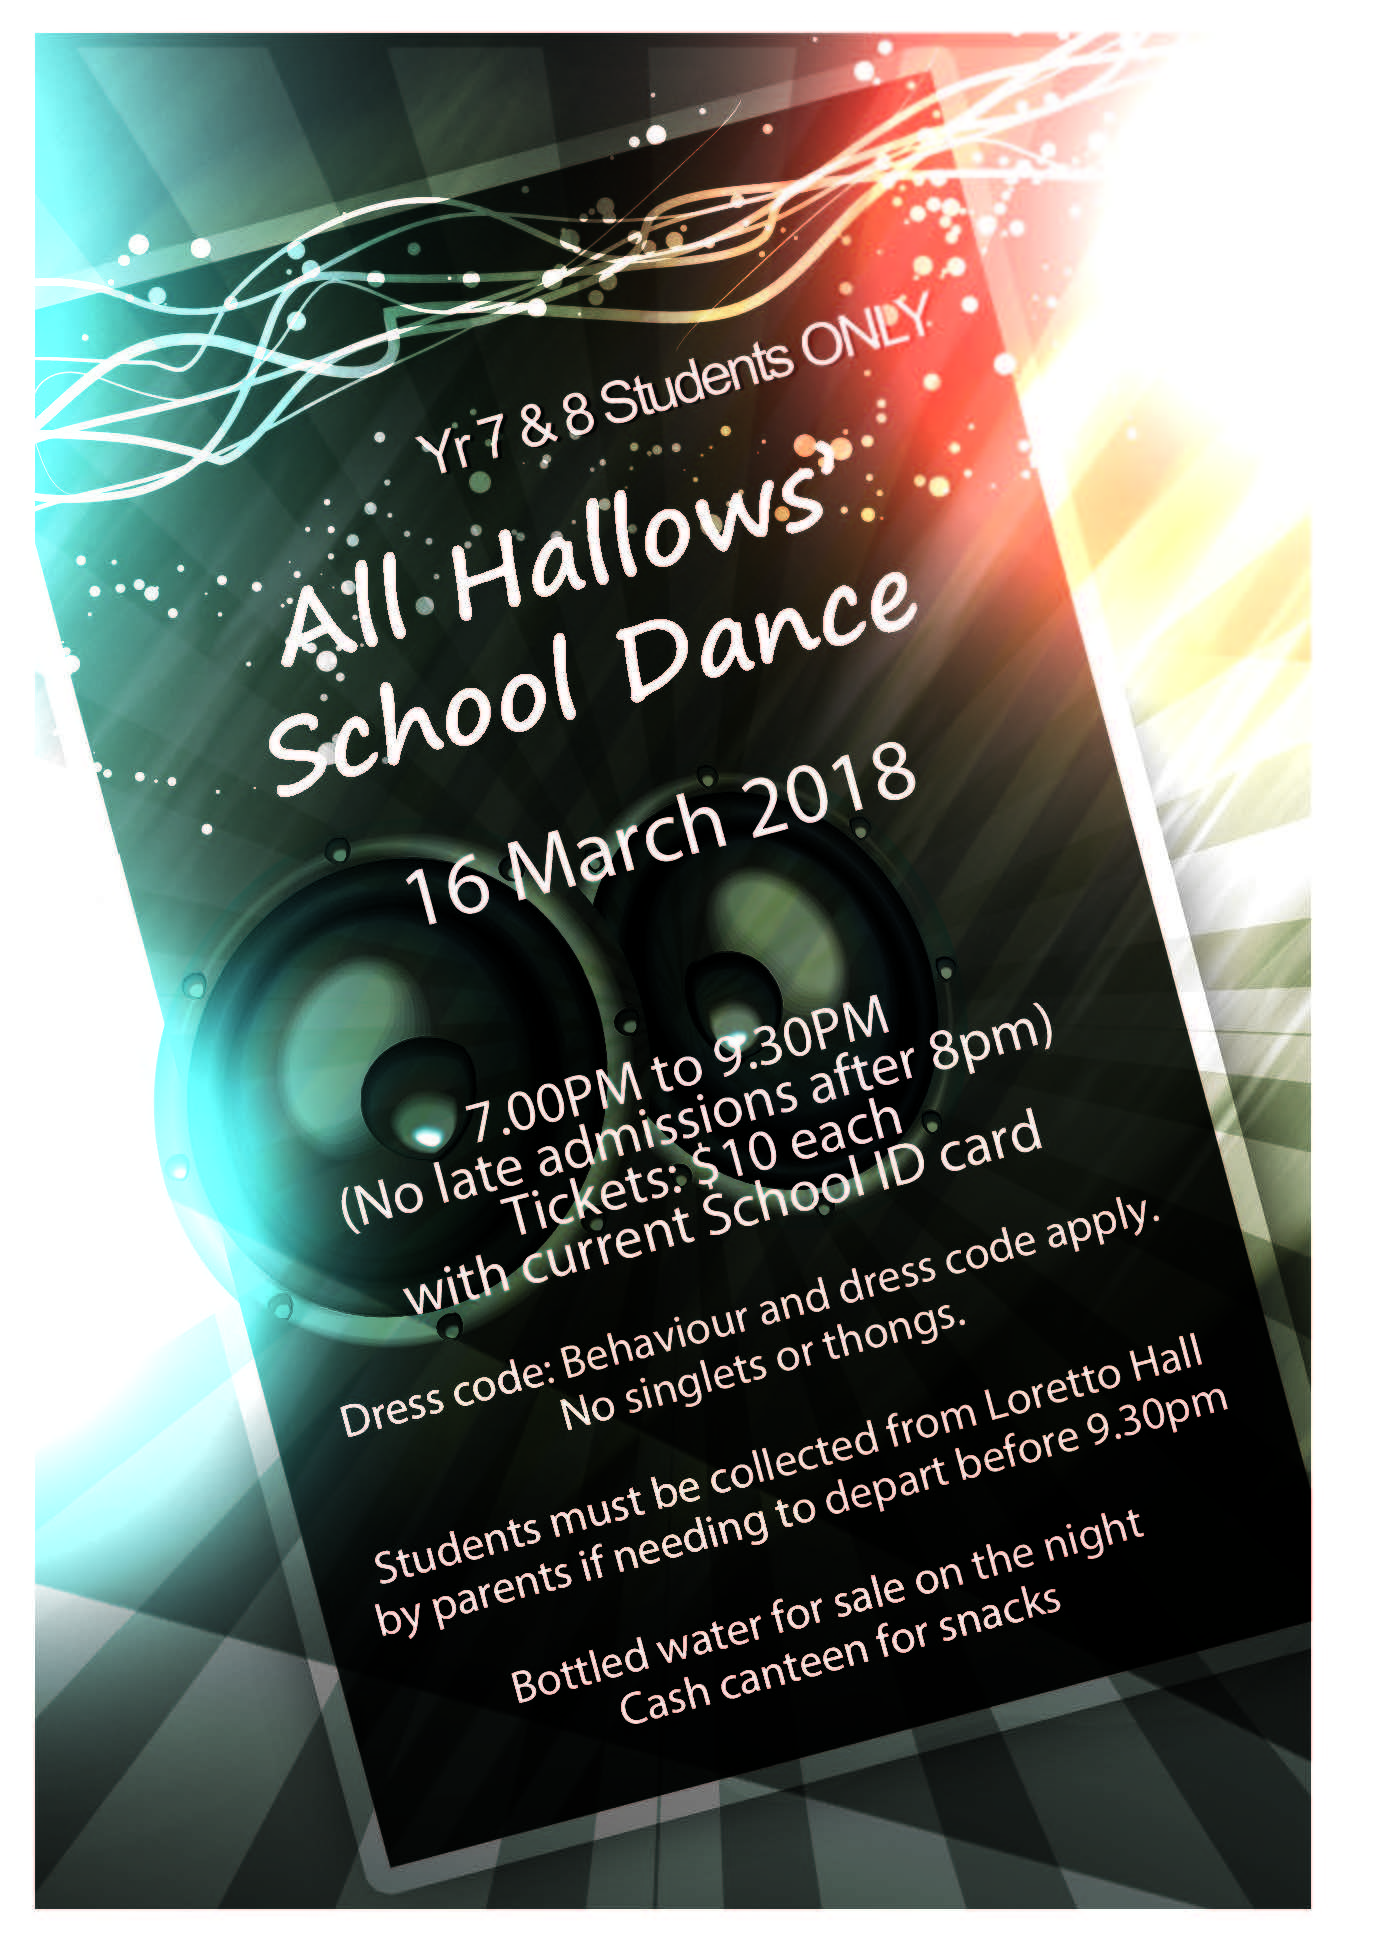 AHS-School-Dance-16March2018.jpg?mtime=2